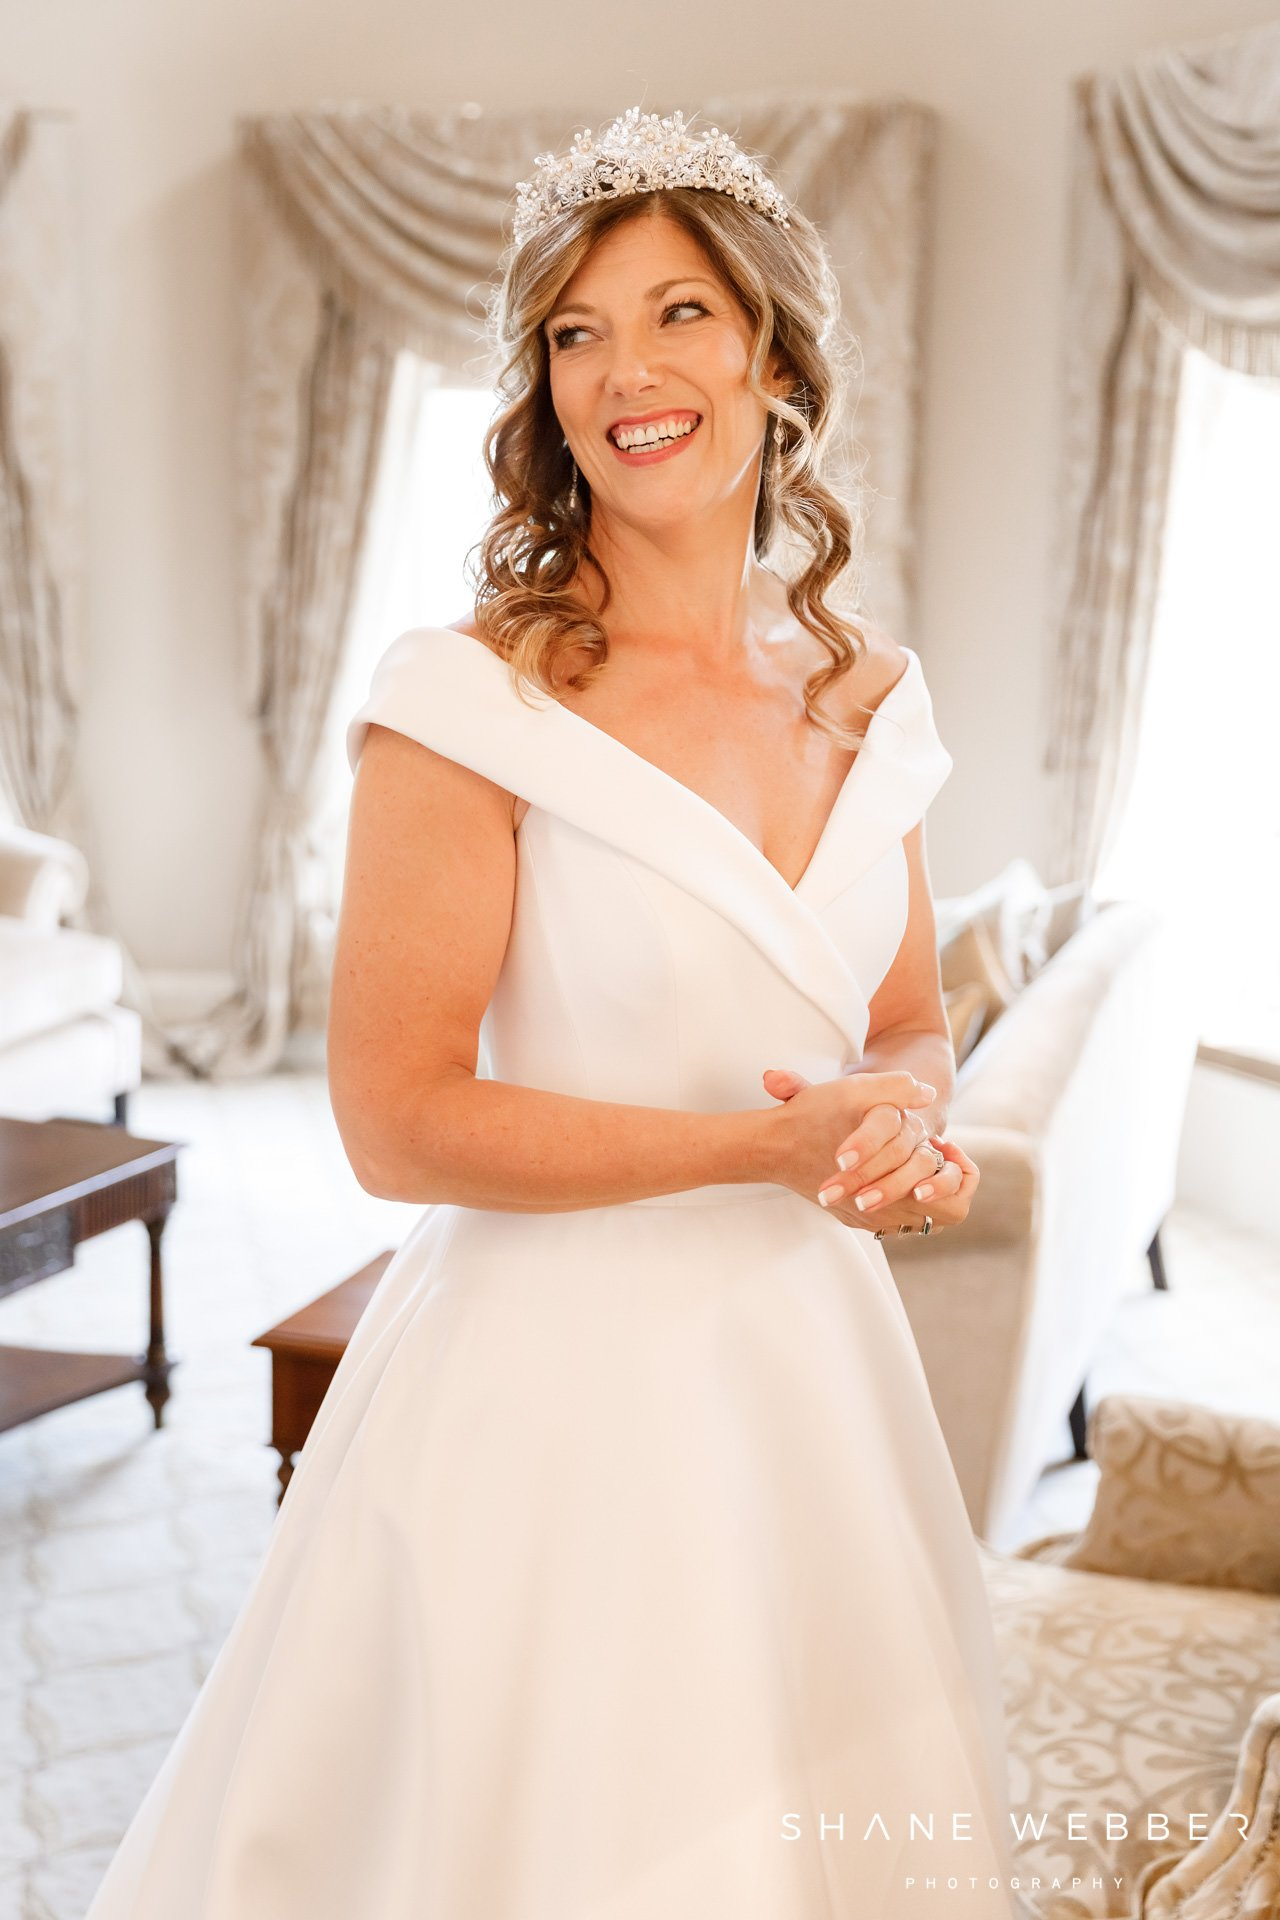 Luxury bridal preparation photo at Grantley Hall